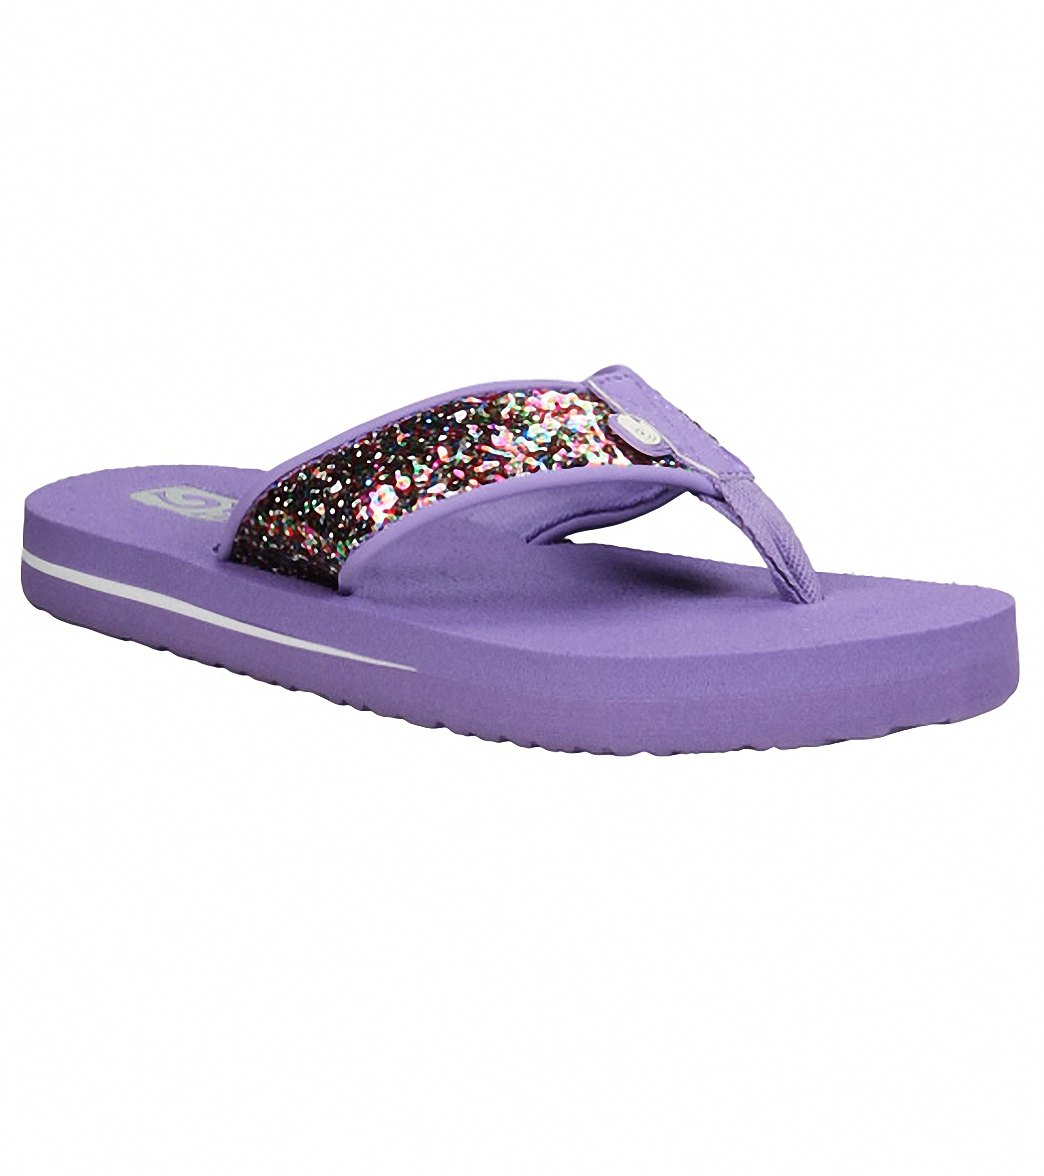 3156943e6966 Teva Kids  (8-13) Mush II Sparkle Flip Flop at SwimOutlet.com